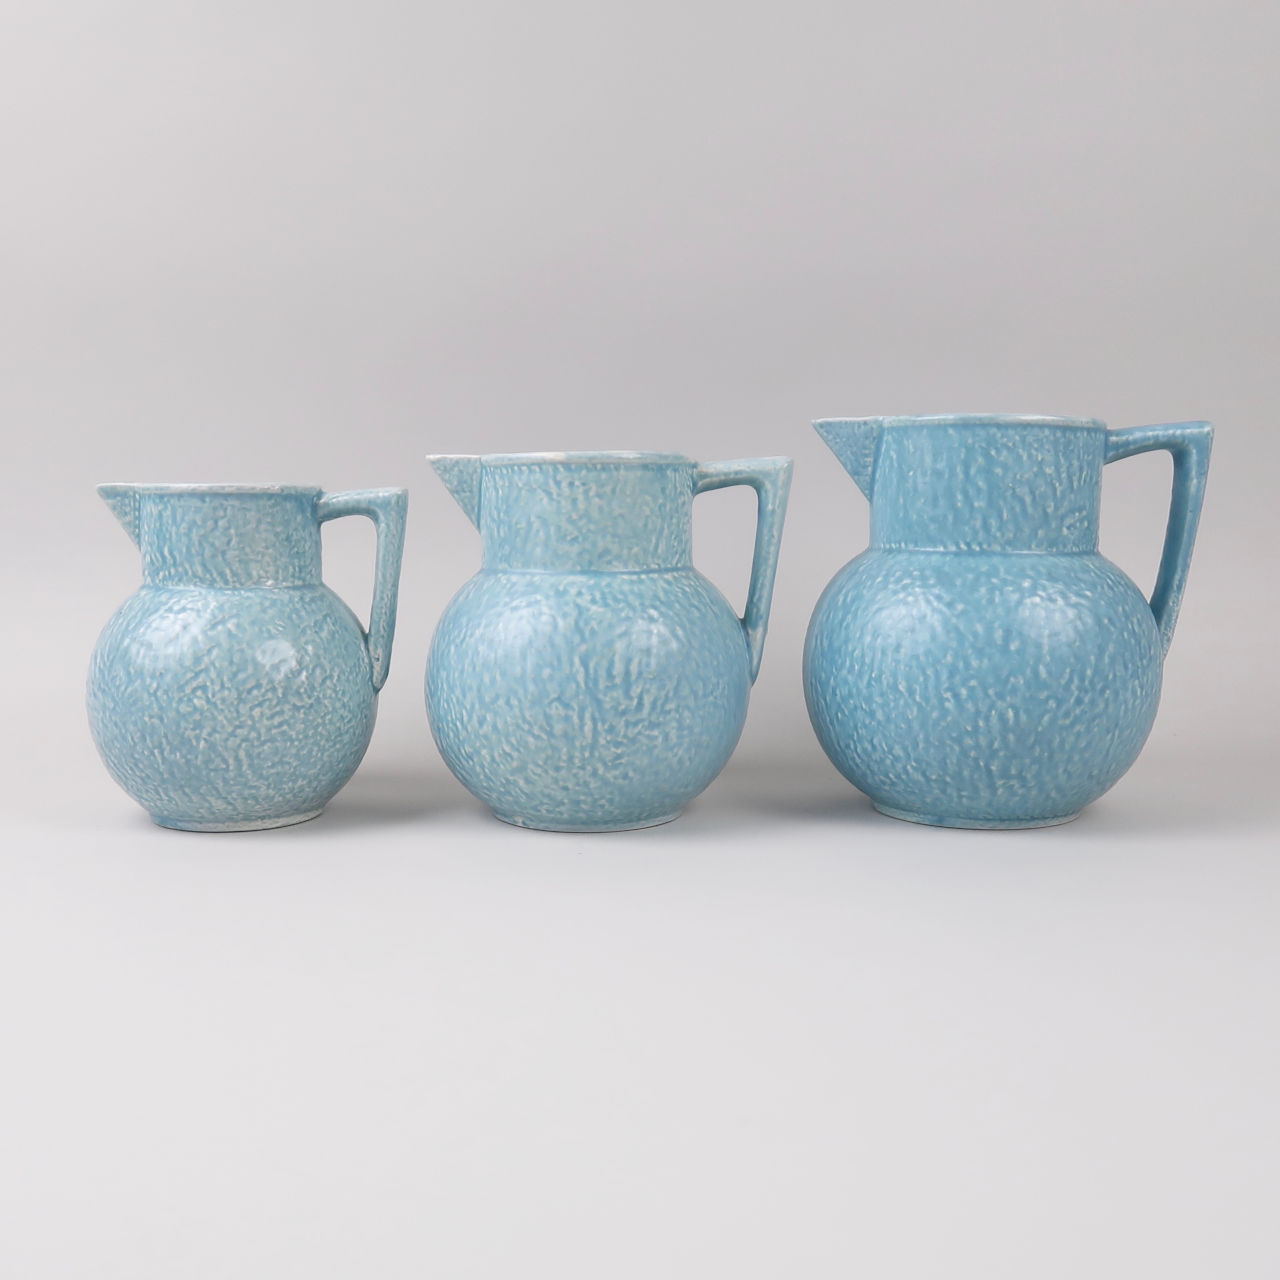 Turquoise Mottled Jugs by Kensington